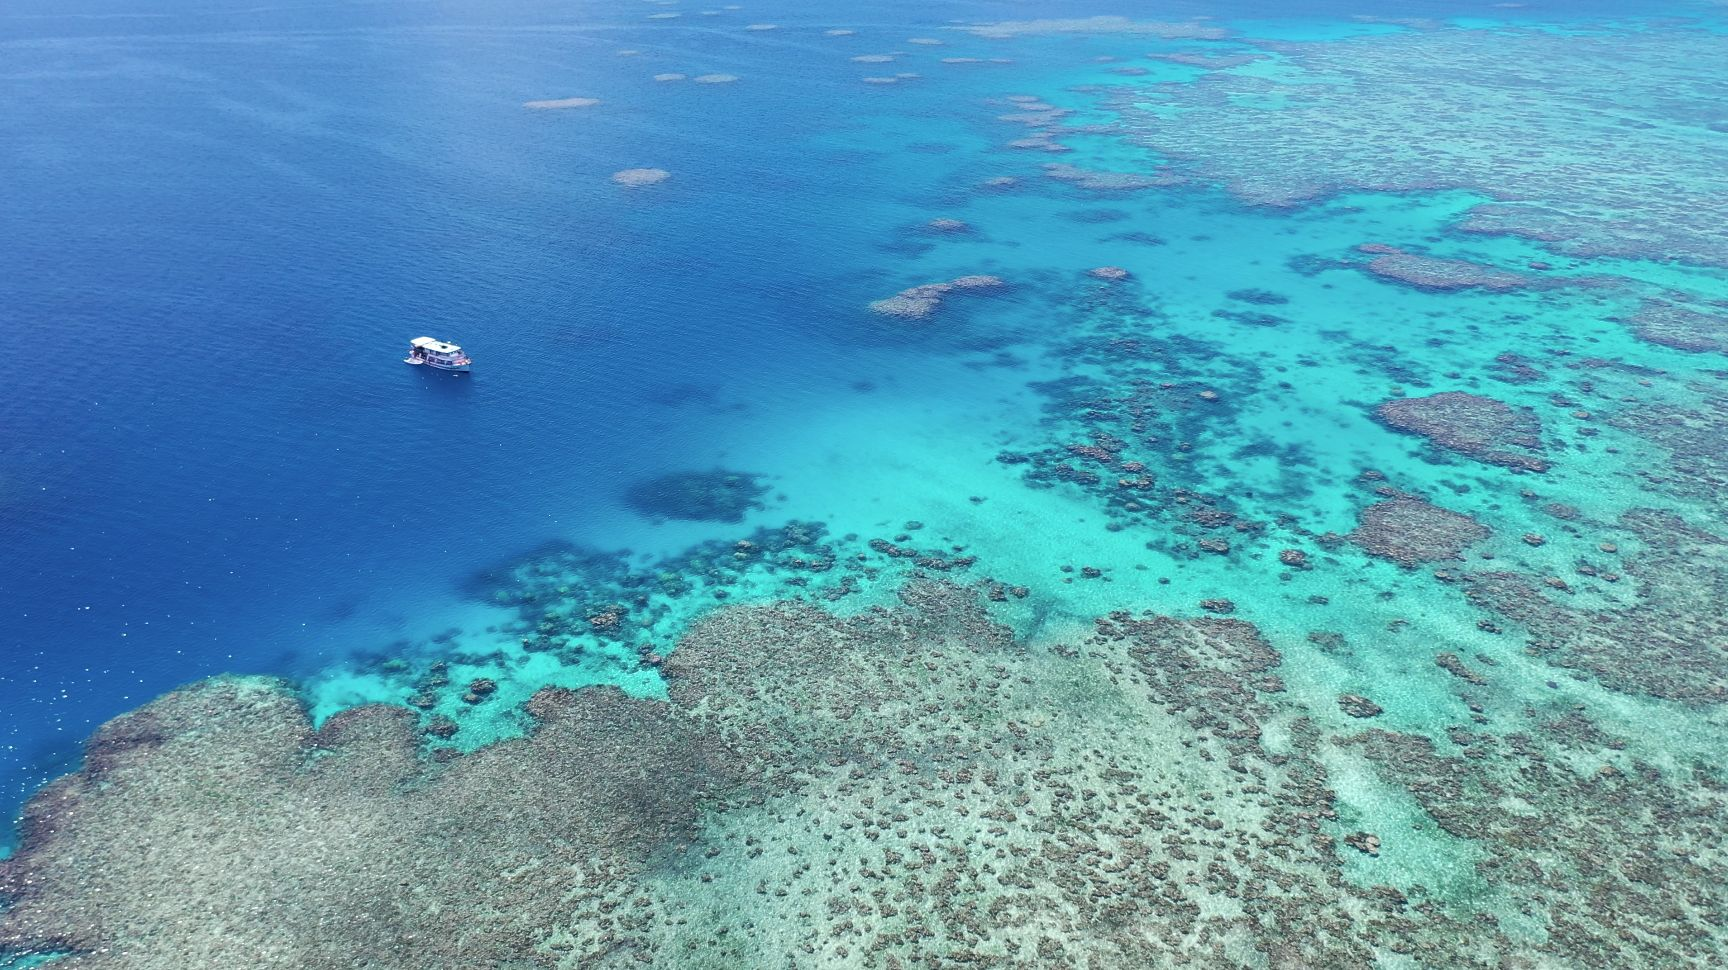 Great Reef Census expedition with Coral Sea Foundation on vessel Kalinda. Credit: Tony Ayling. Coral Sea Foundation